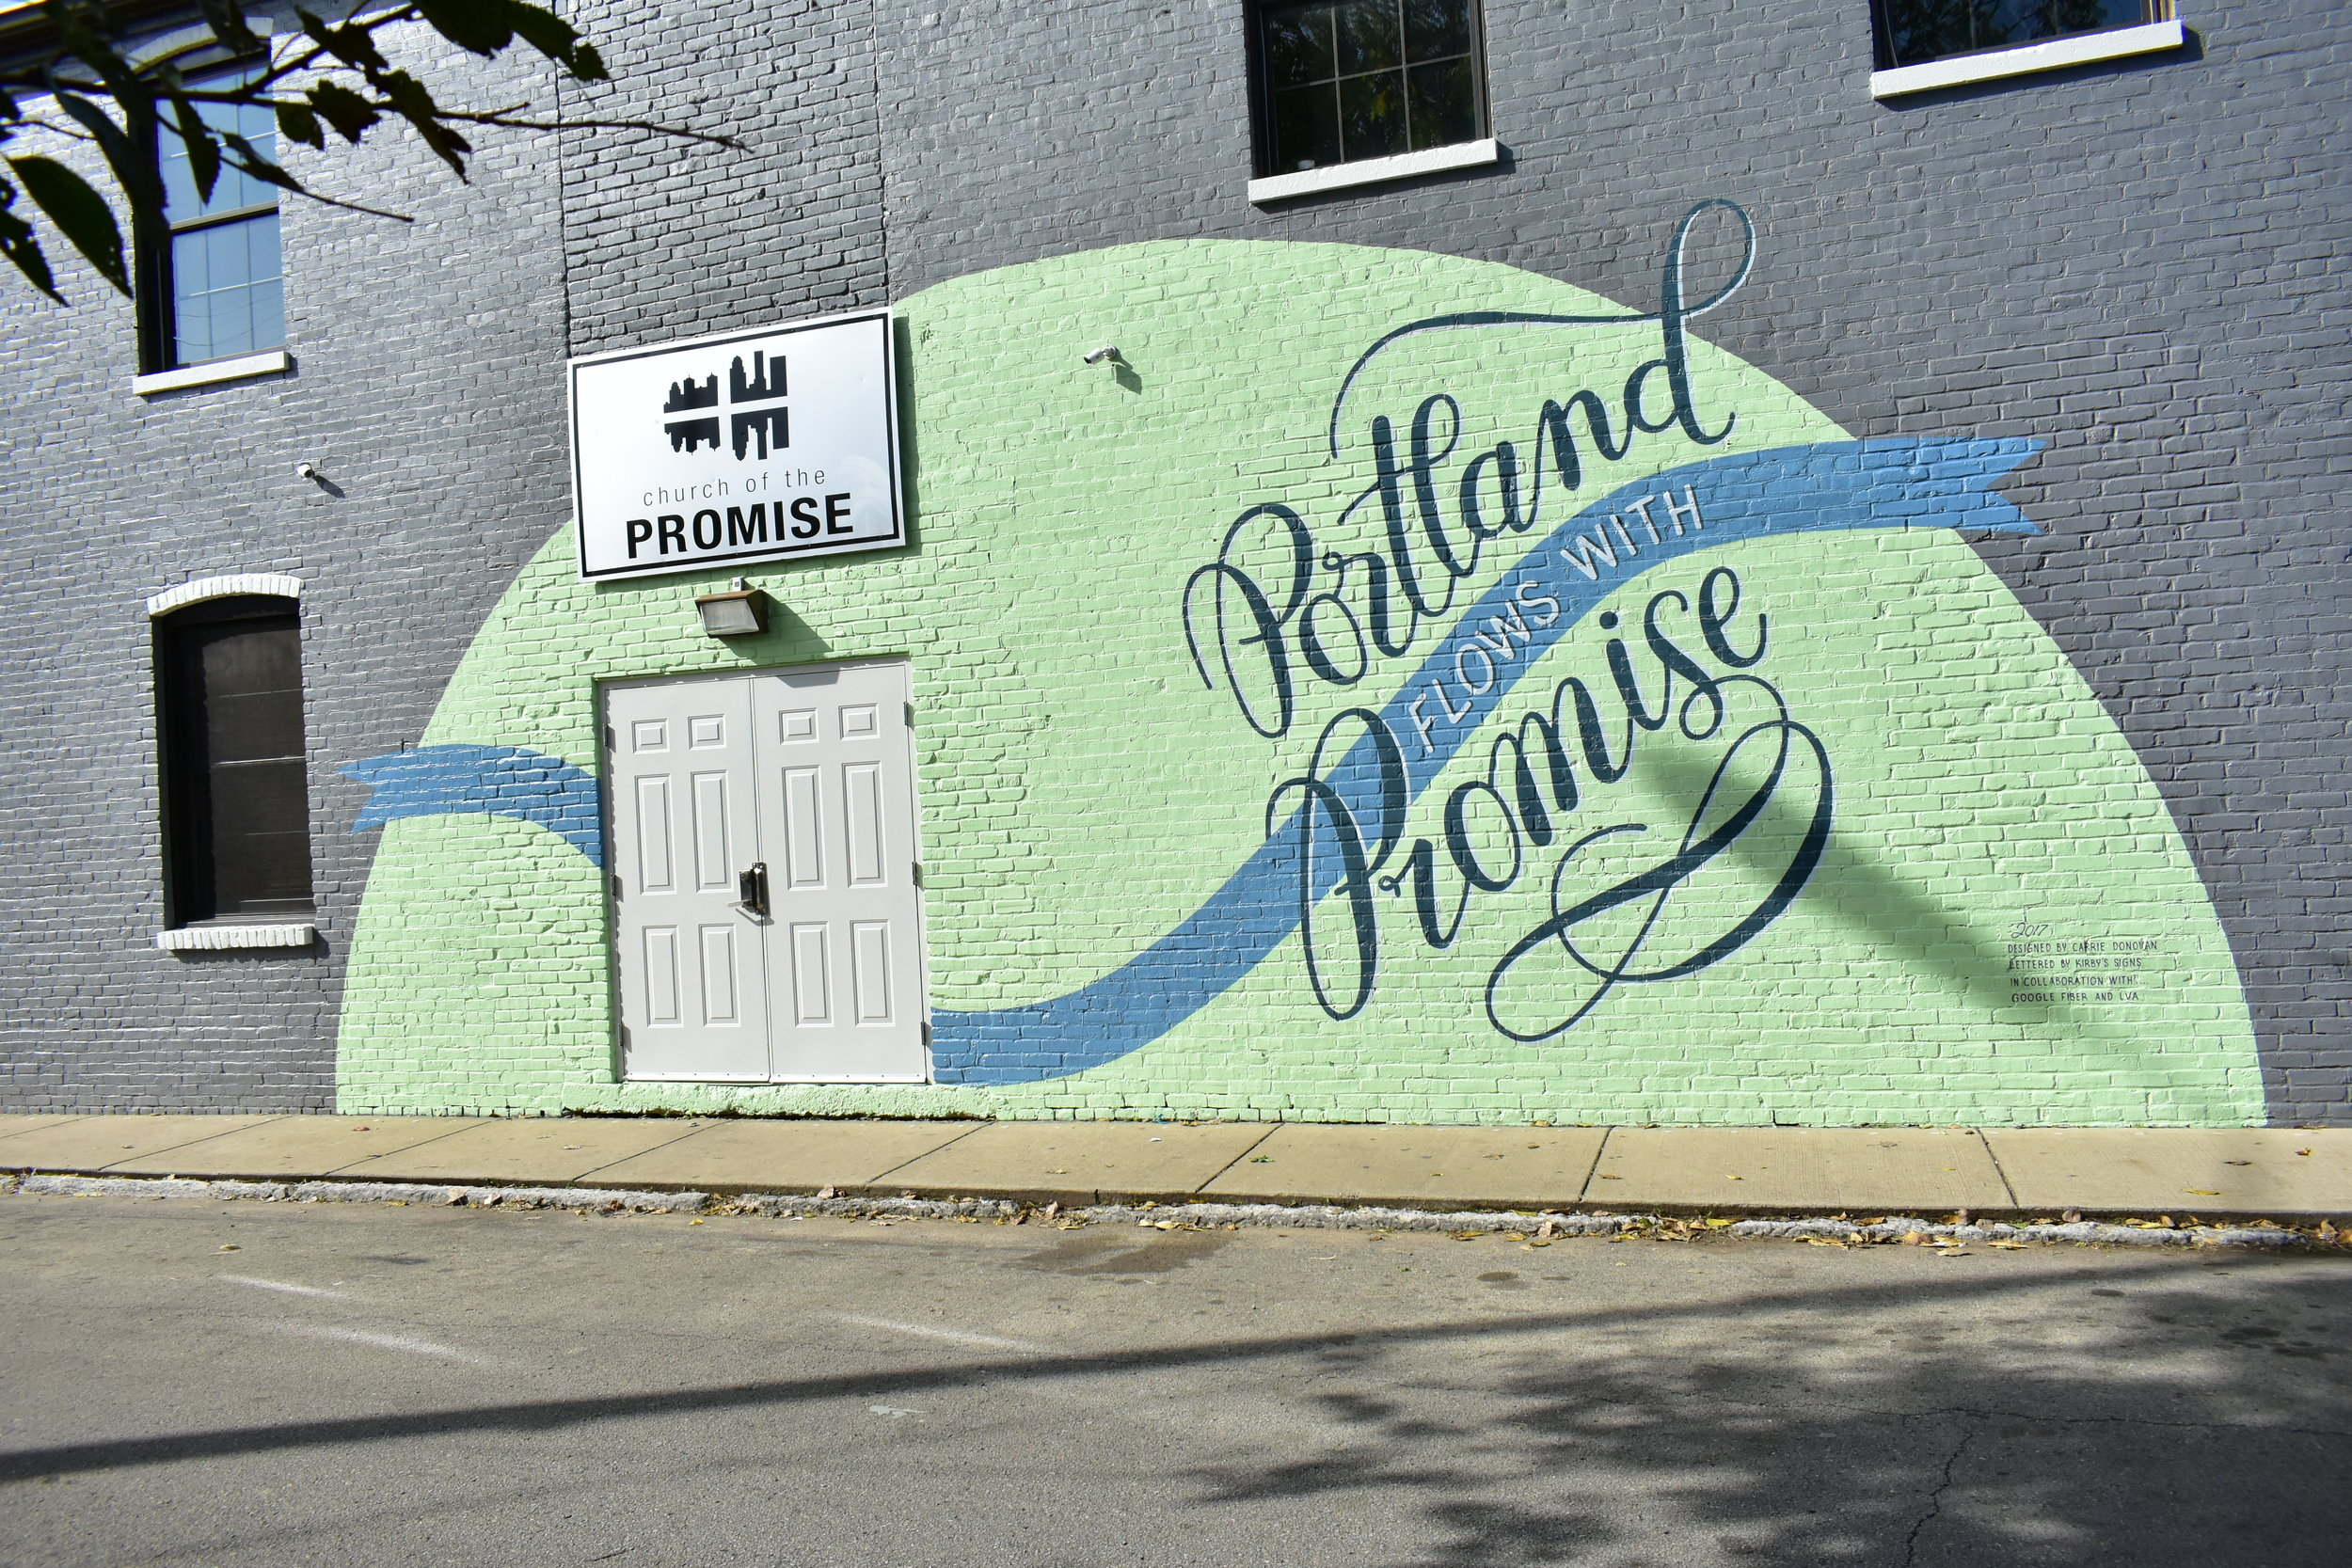 The elements of the mural visually connect the different aspects of what happens in the Promise Building, and the banner and the type express the idea of flow—like the river, and like the way their work flows into the community.